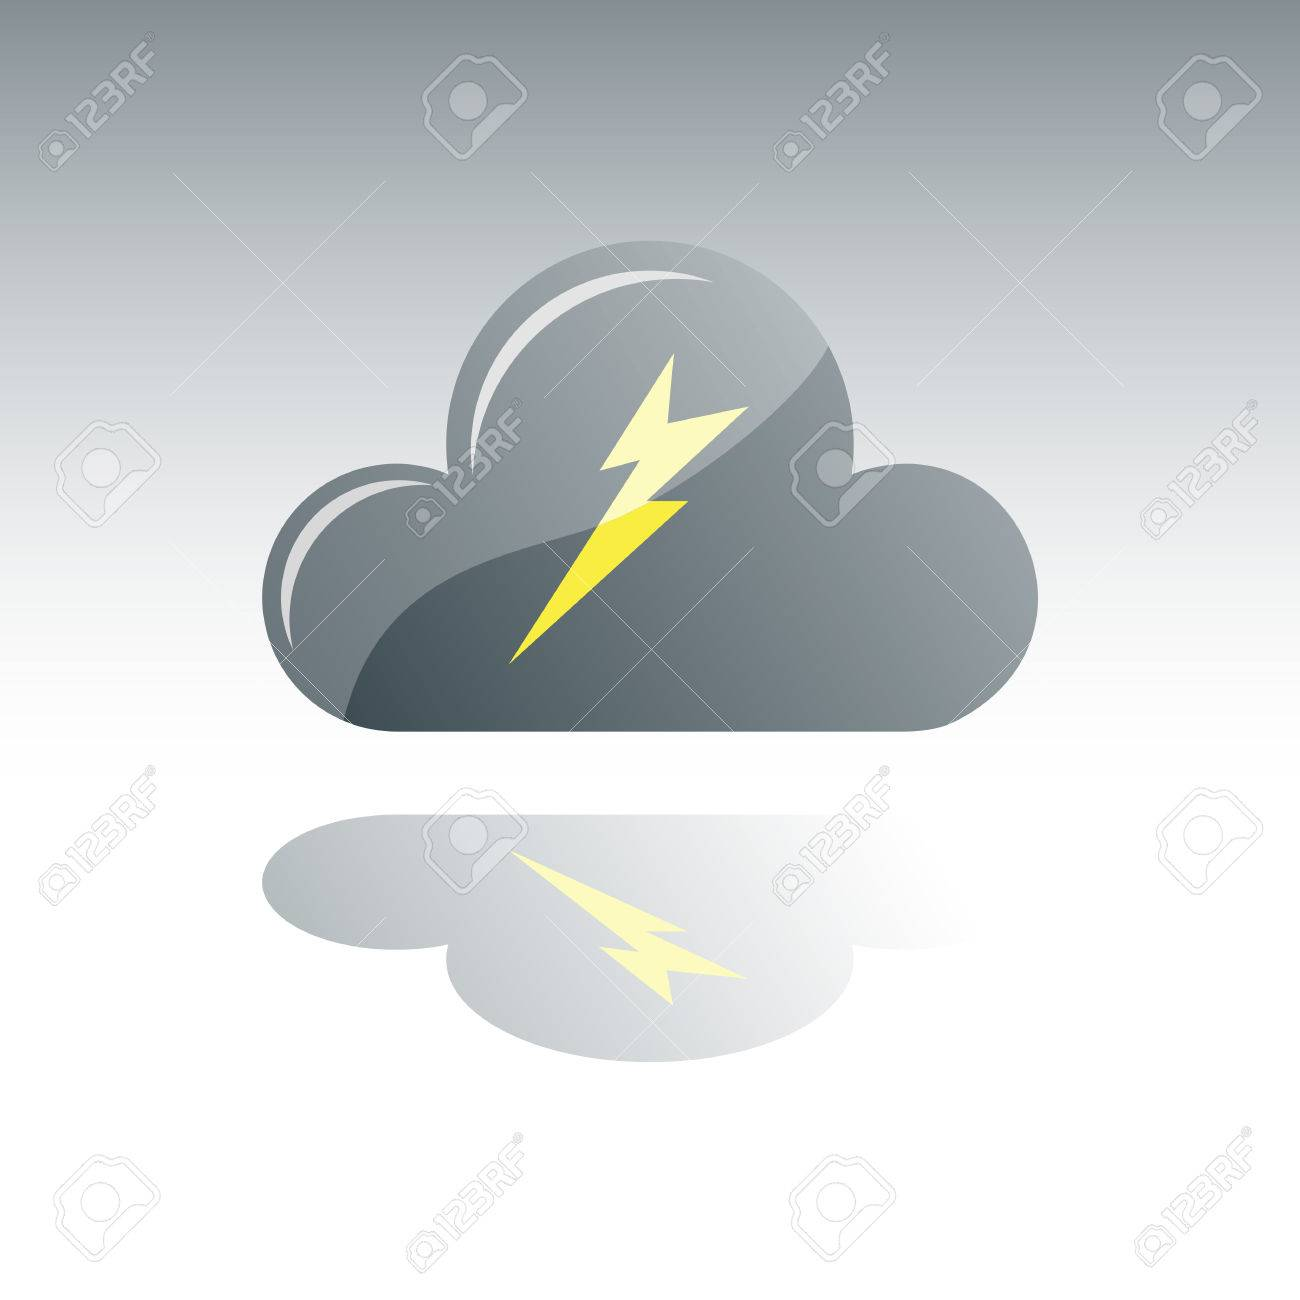 Dark Gray Cloud With Lightning and Reflection Stock Vector - 4388707